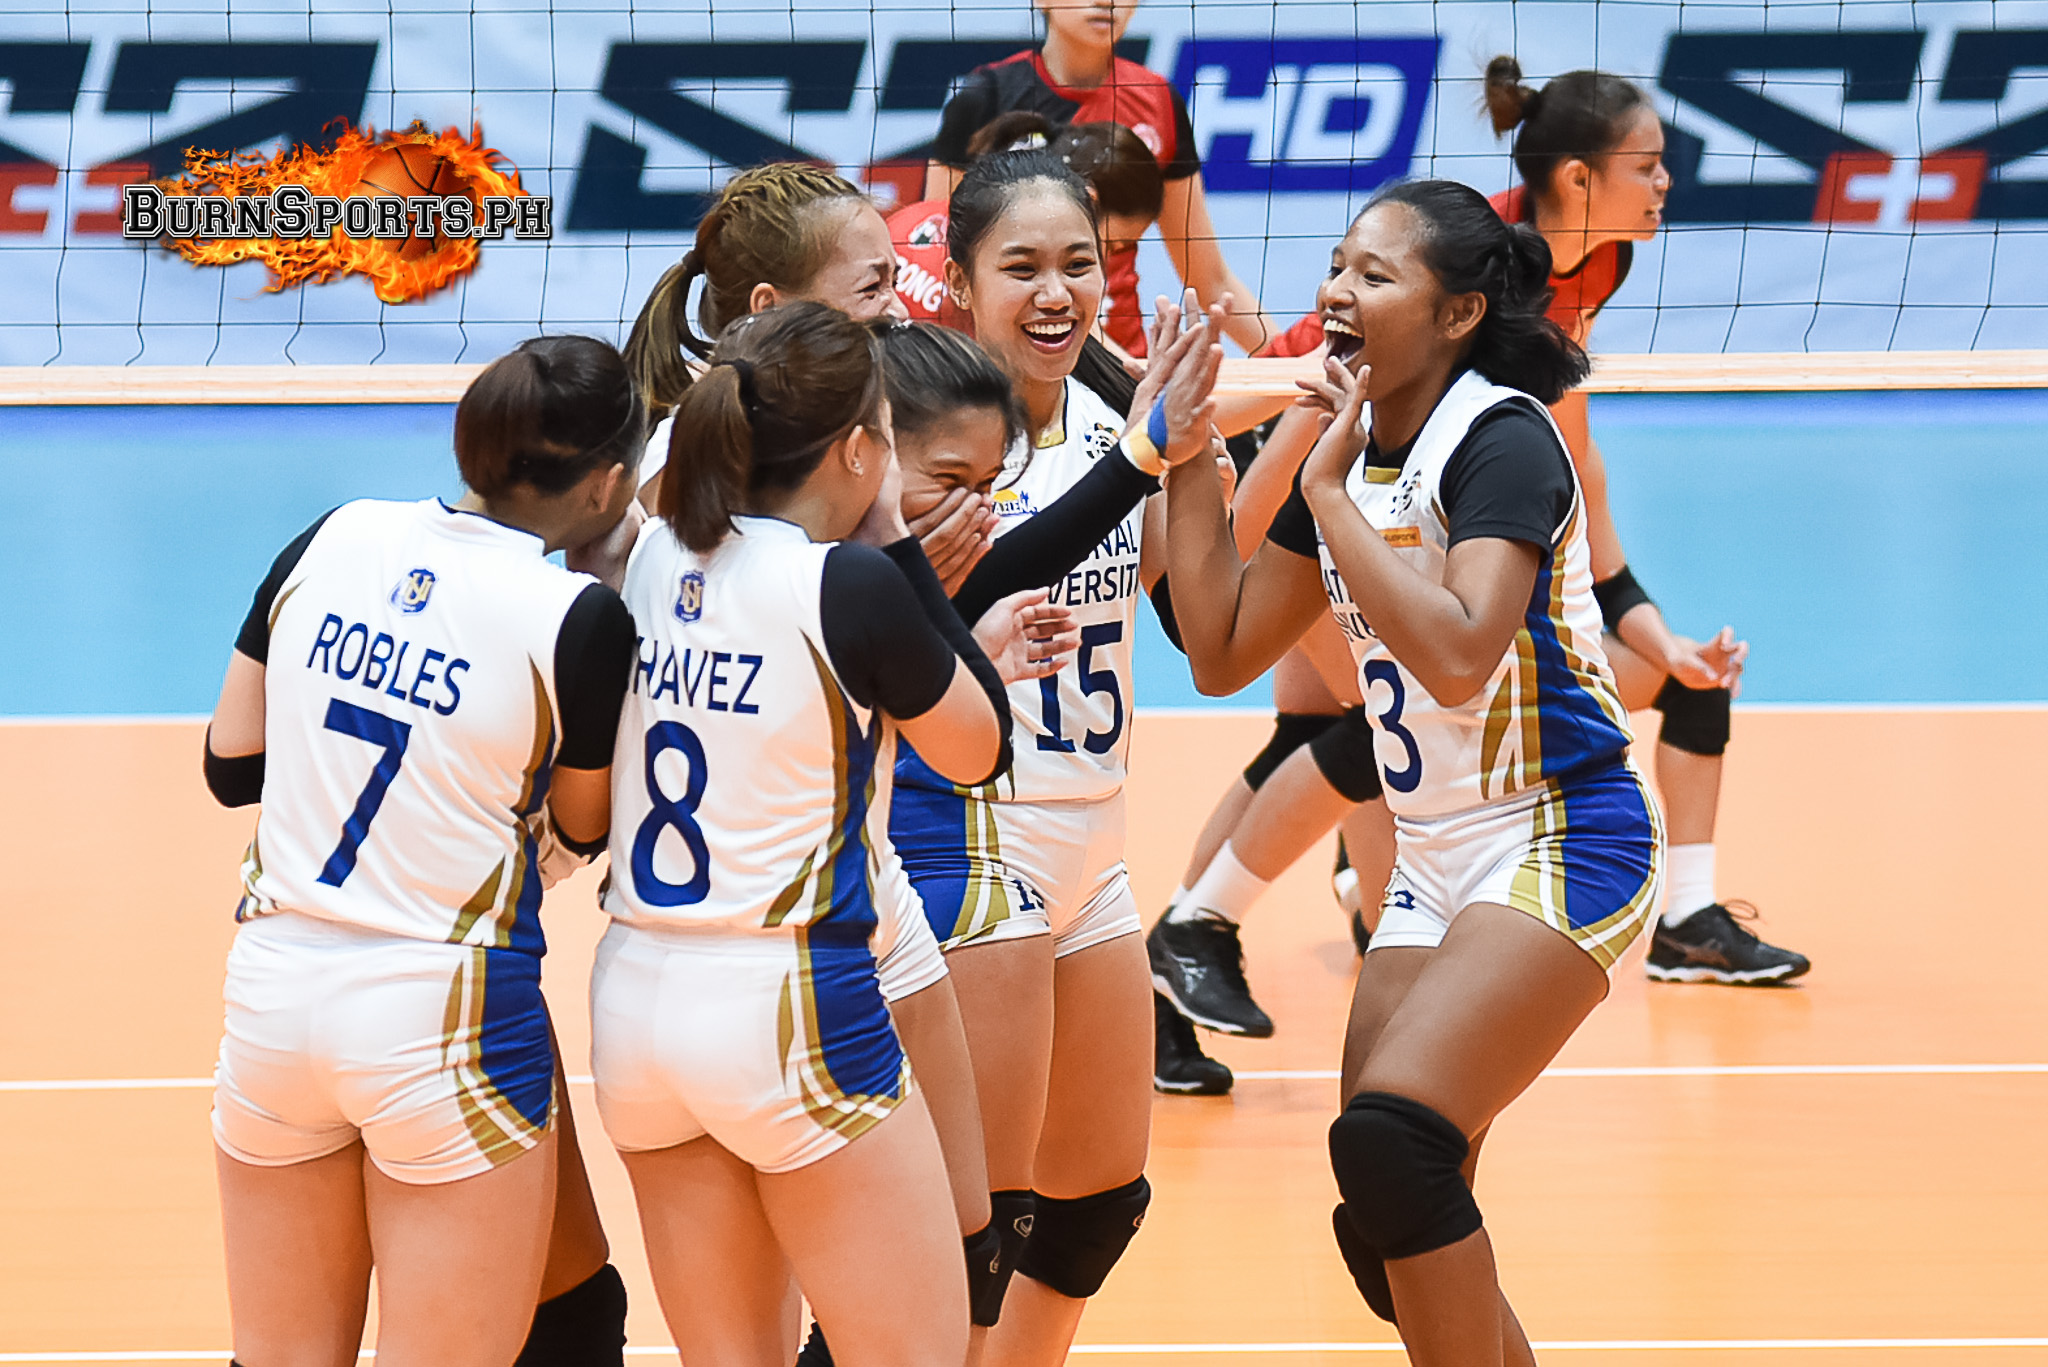 National U stuns UP in come-from-behind five-set win